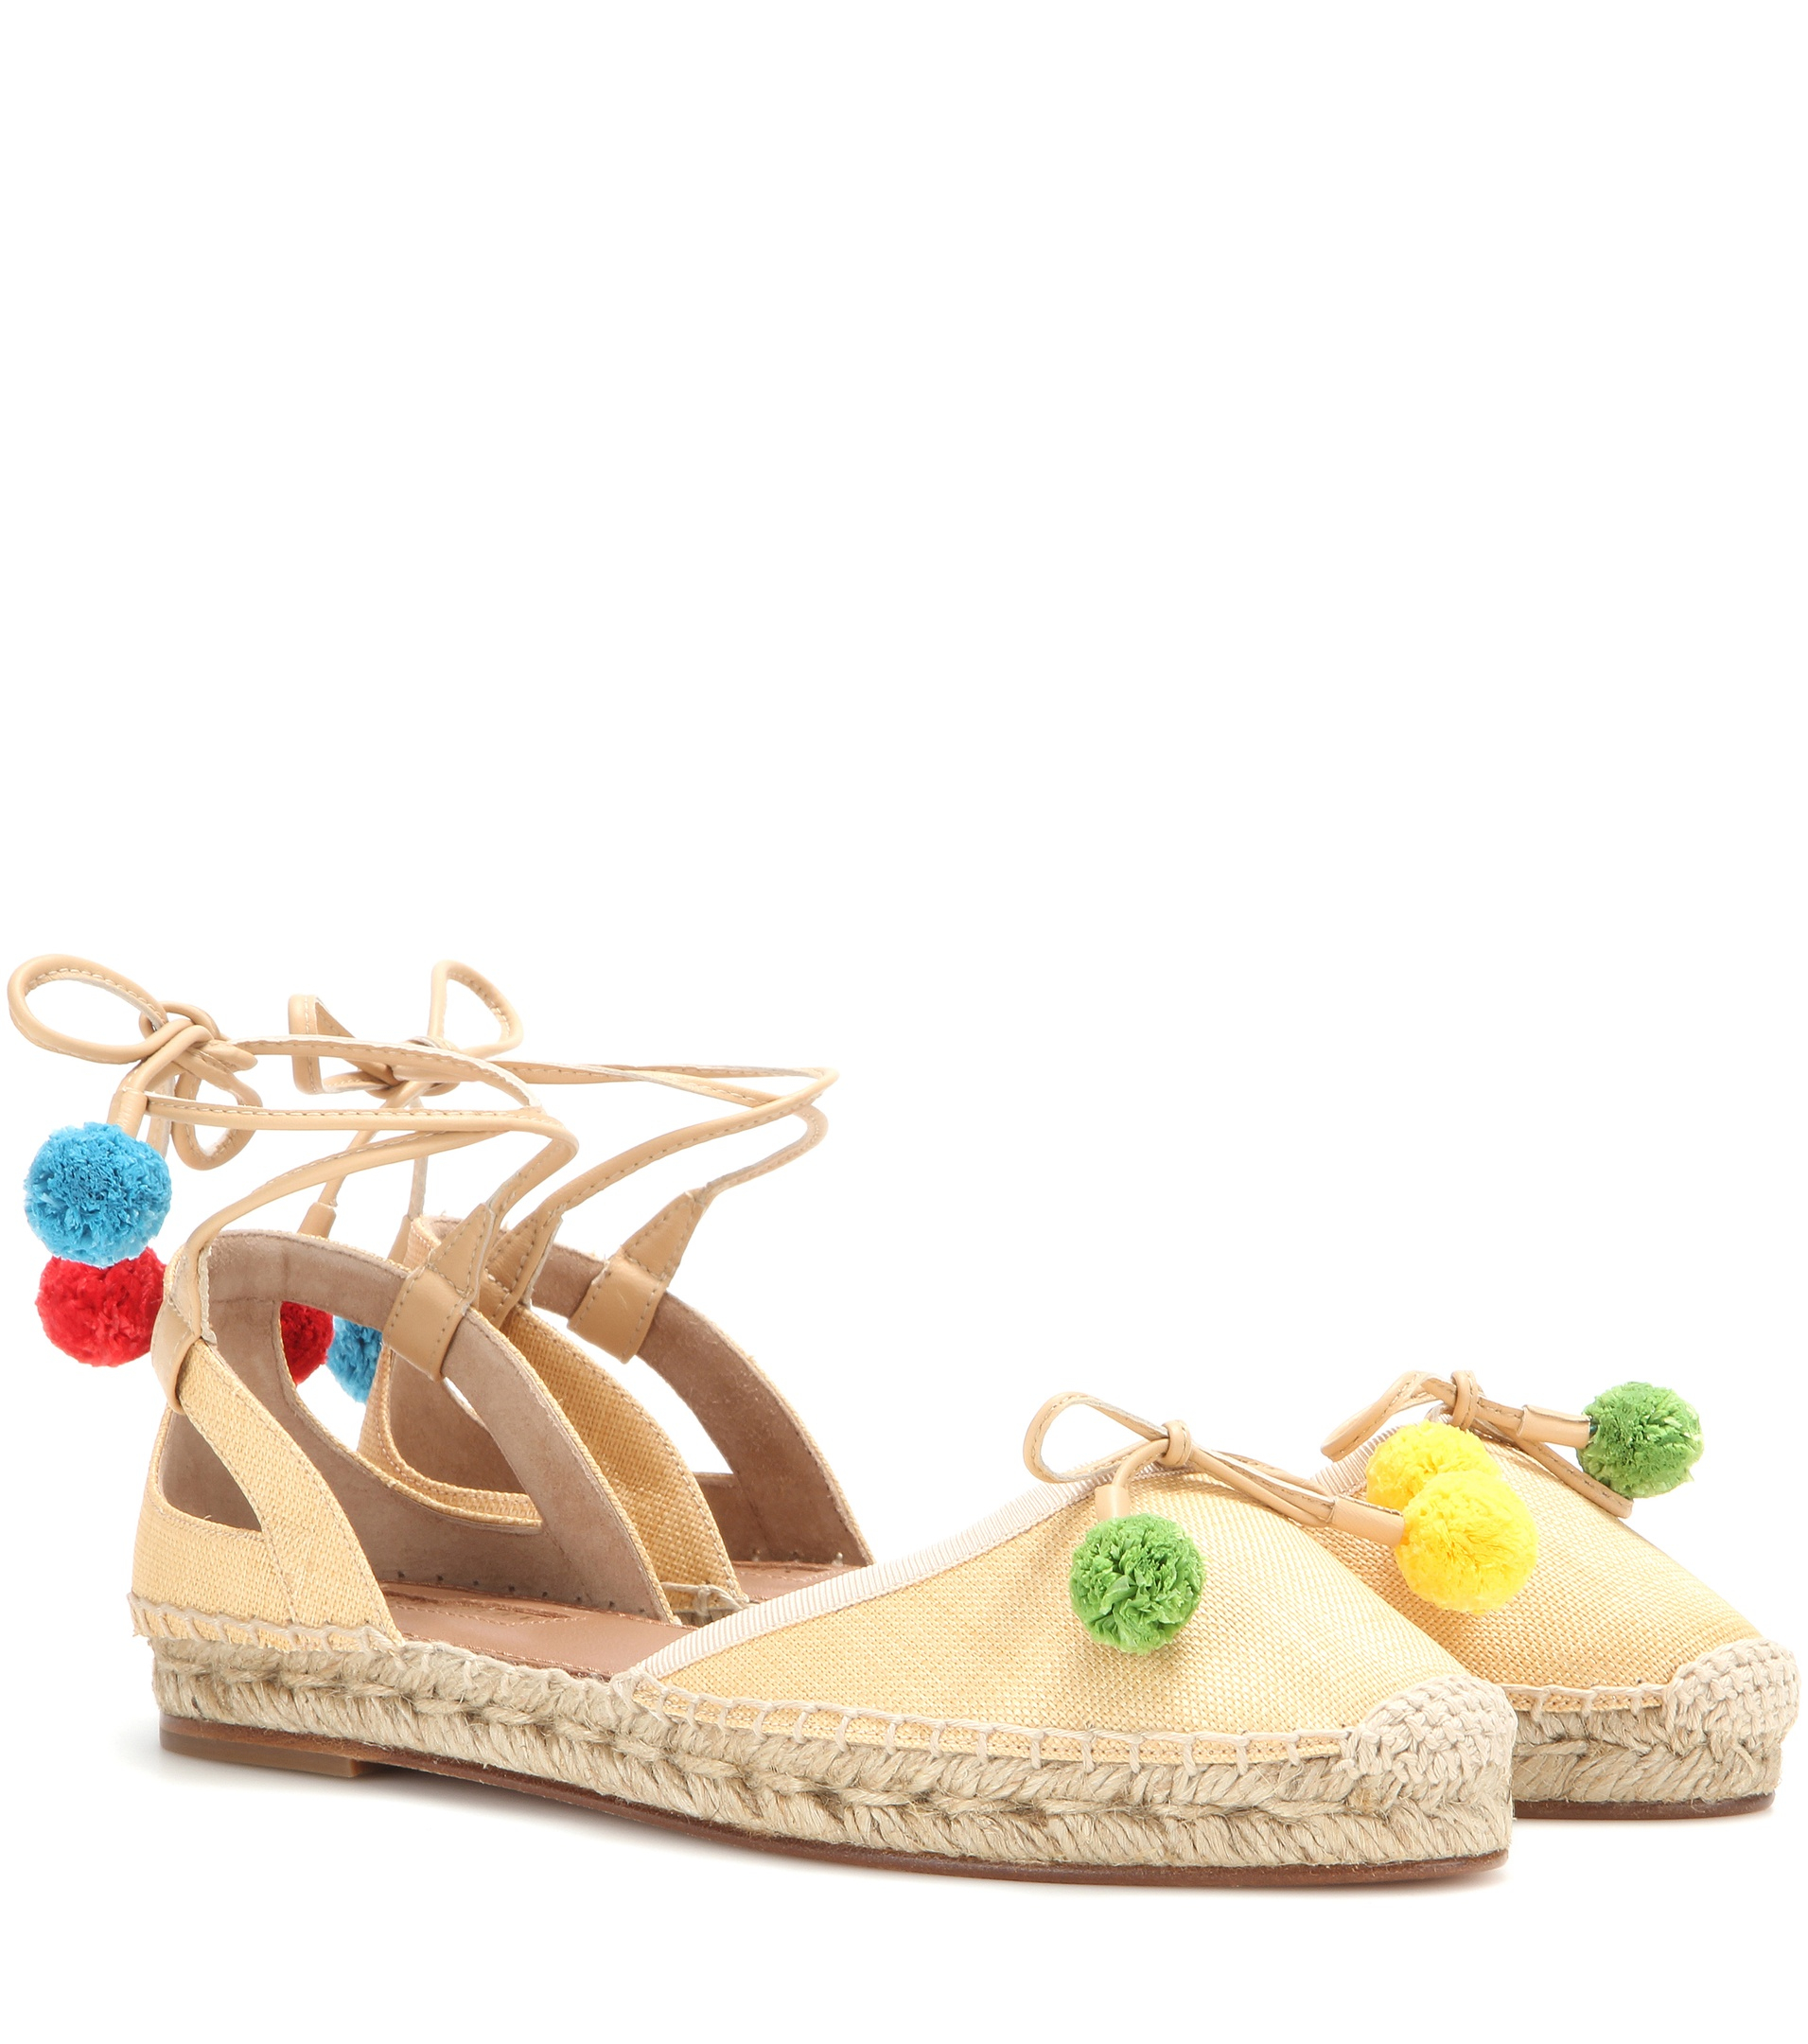 Inside Wedges Carys Beige 39 Aquazzura Palm Beach Espadrilles In Natural Lyst Gallery